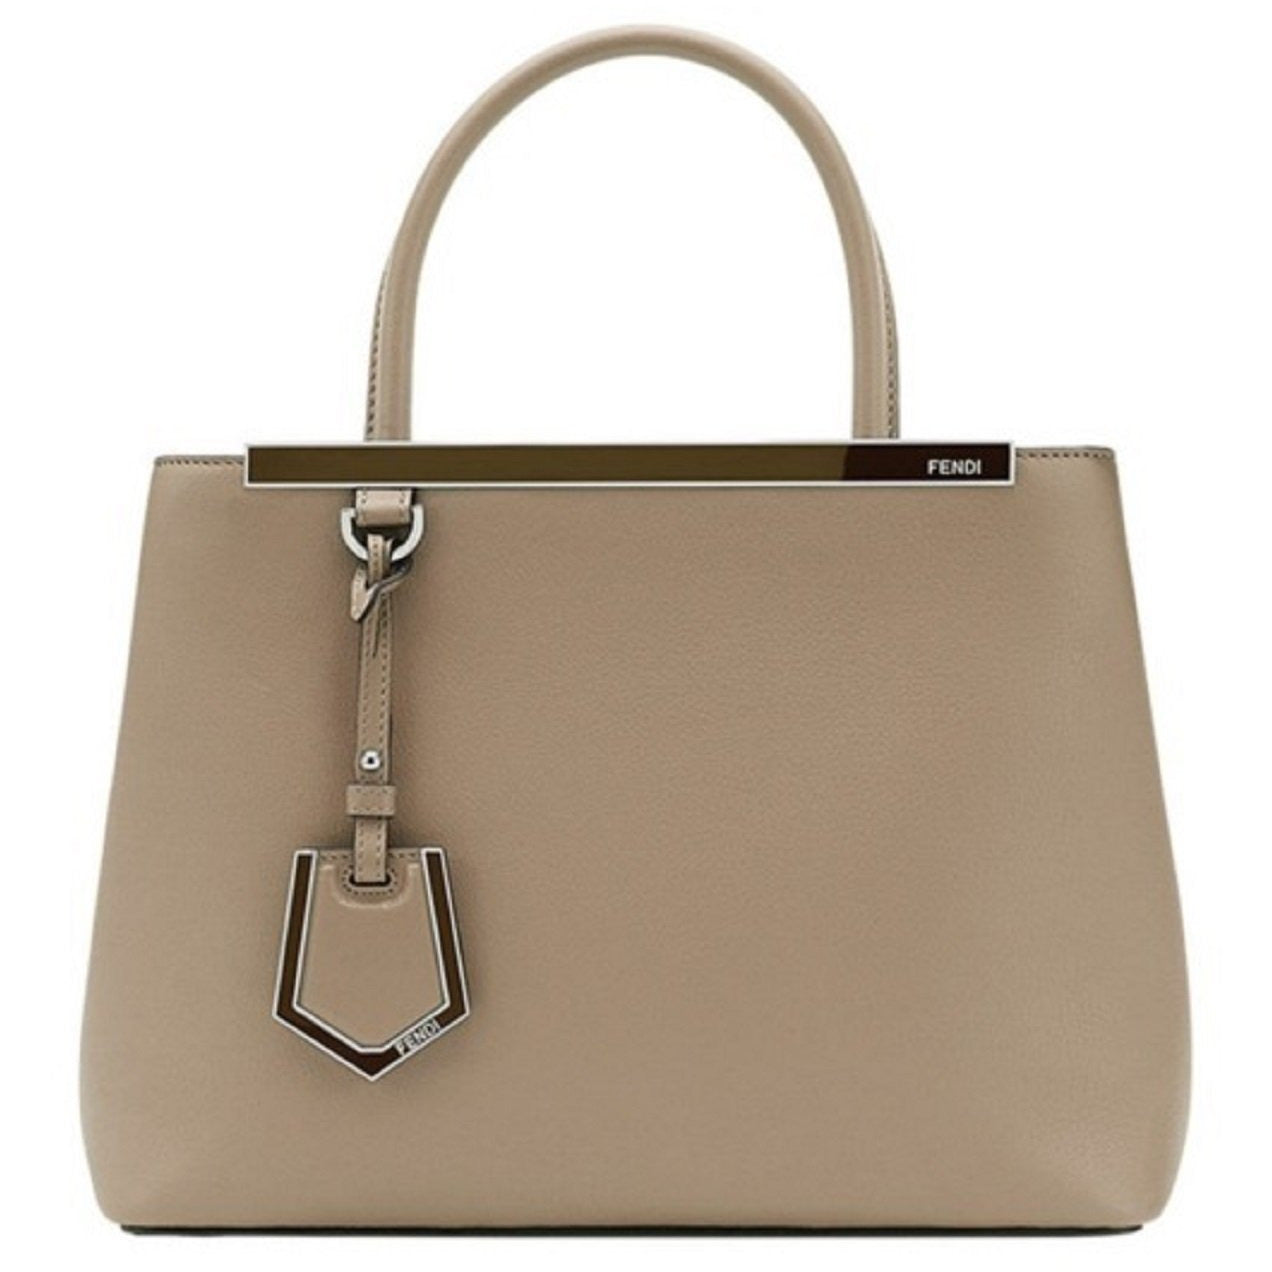 Fendi 2 Jours Dove Beige Calf Leather Shopping Tote Cross Body Handbag 8BH253